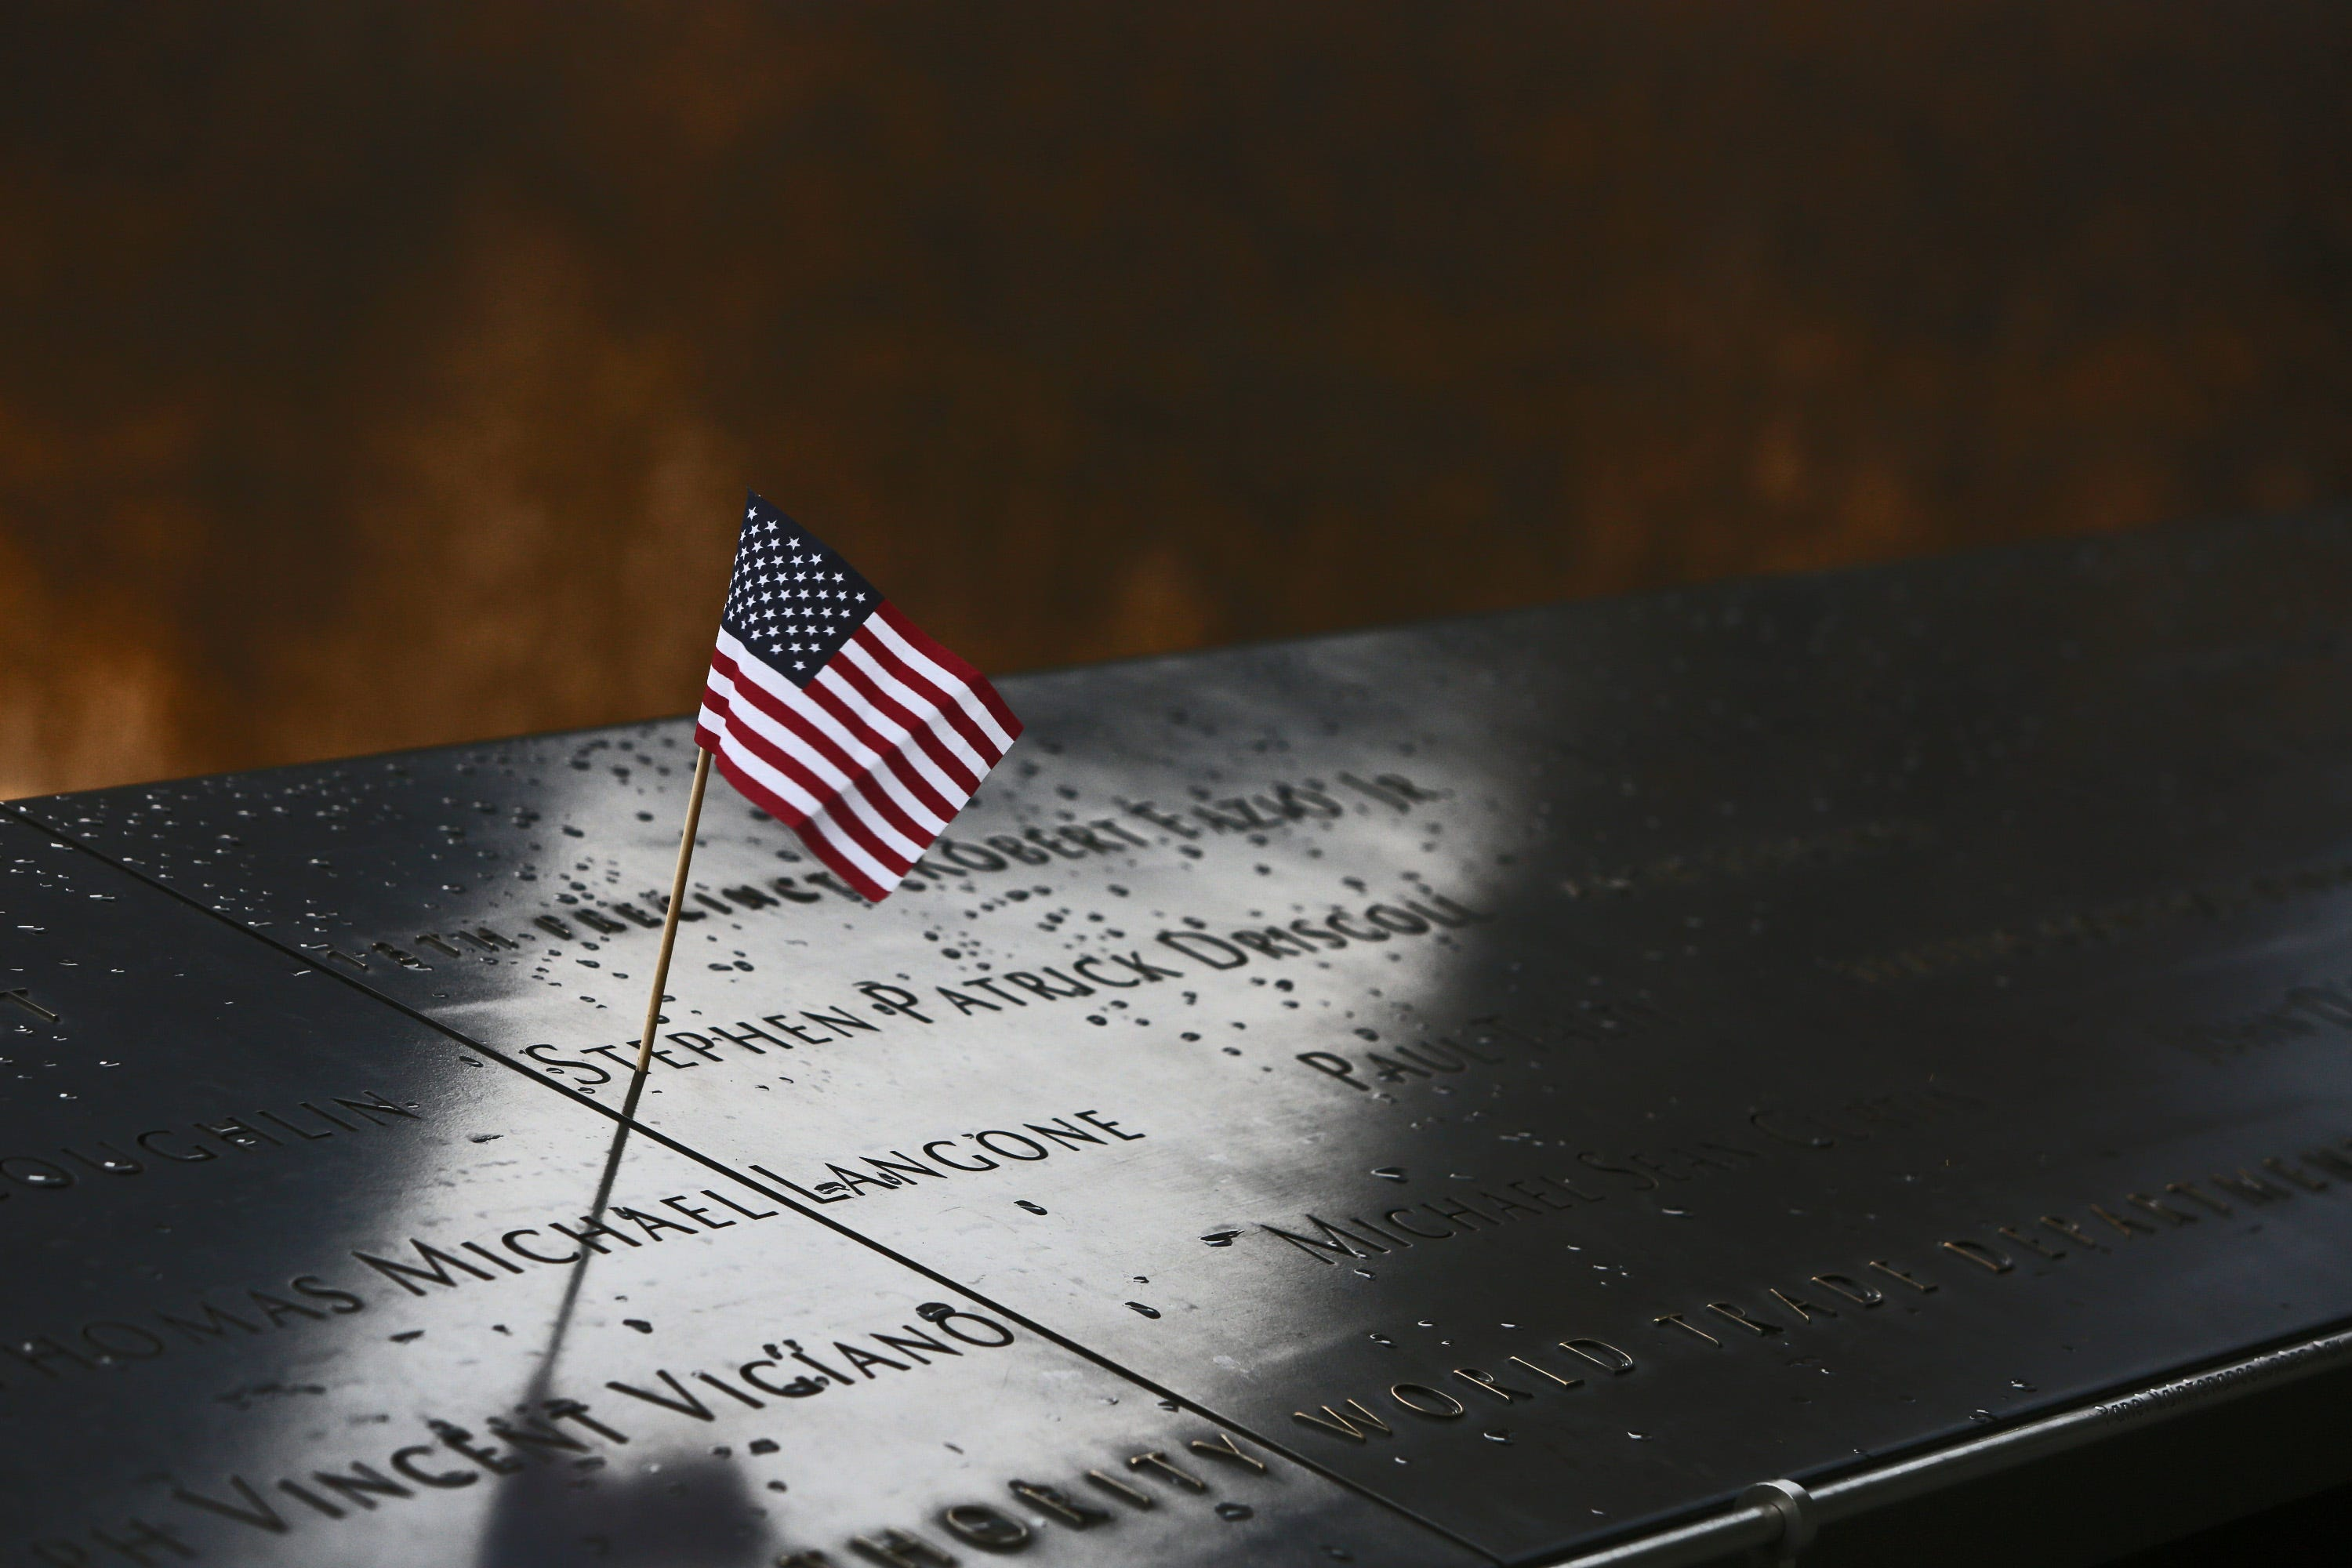 Names of people who died in the World Trade Center in the Sept. 11 terrorist attacks are engraved in bronze panels on parapets surrounding reflecting pools that are placed where the Twin Towers stood.